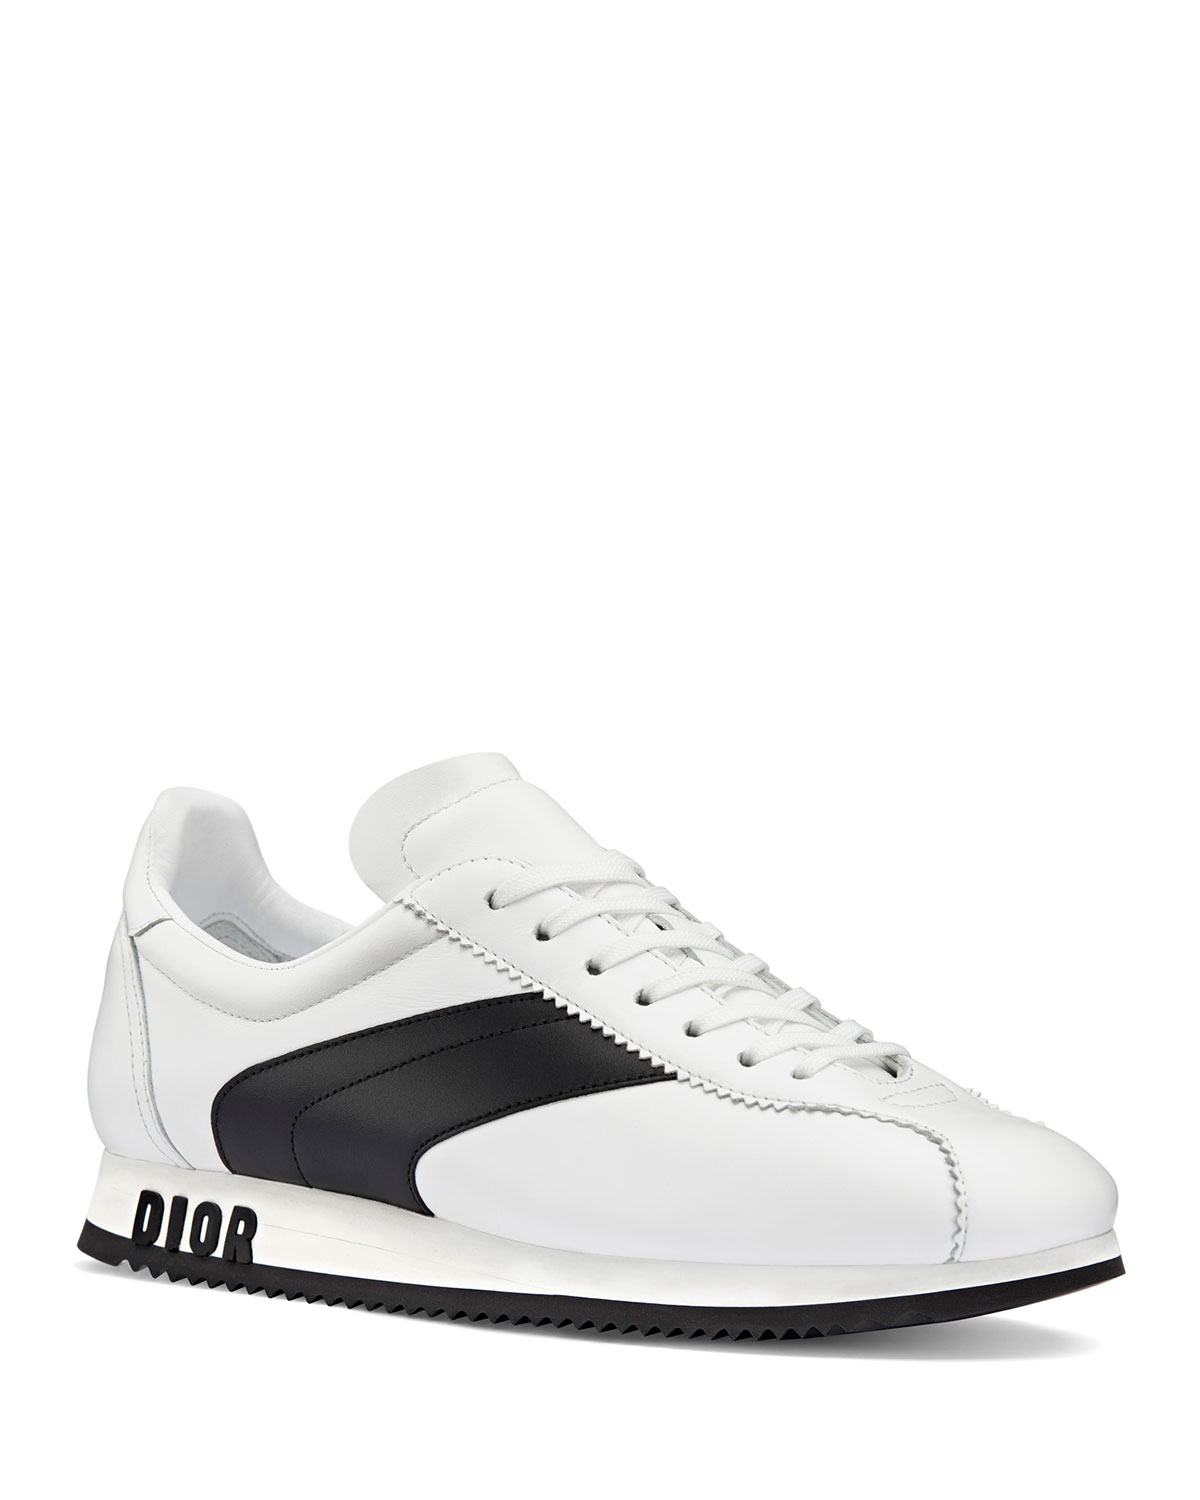 UN CALFSKIN LEATHER SNEAKERS